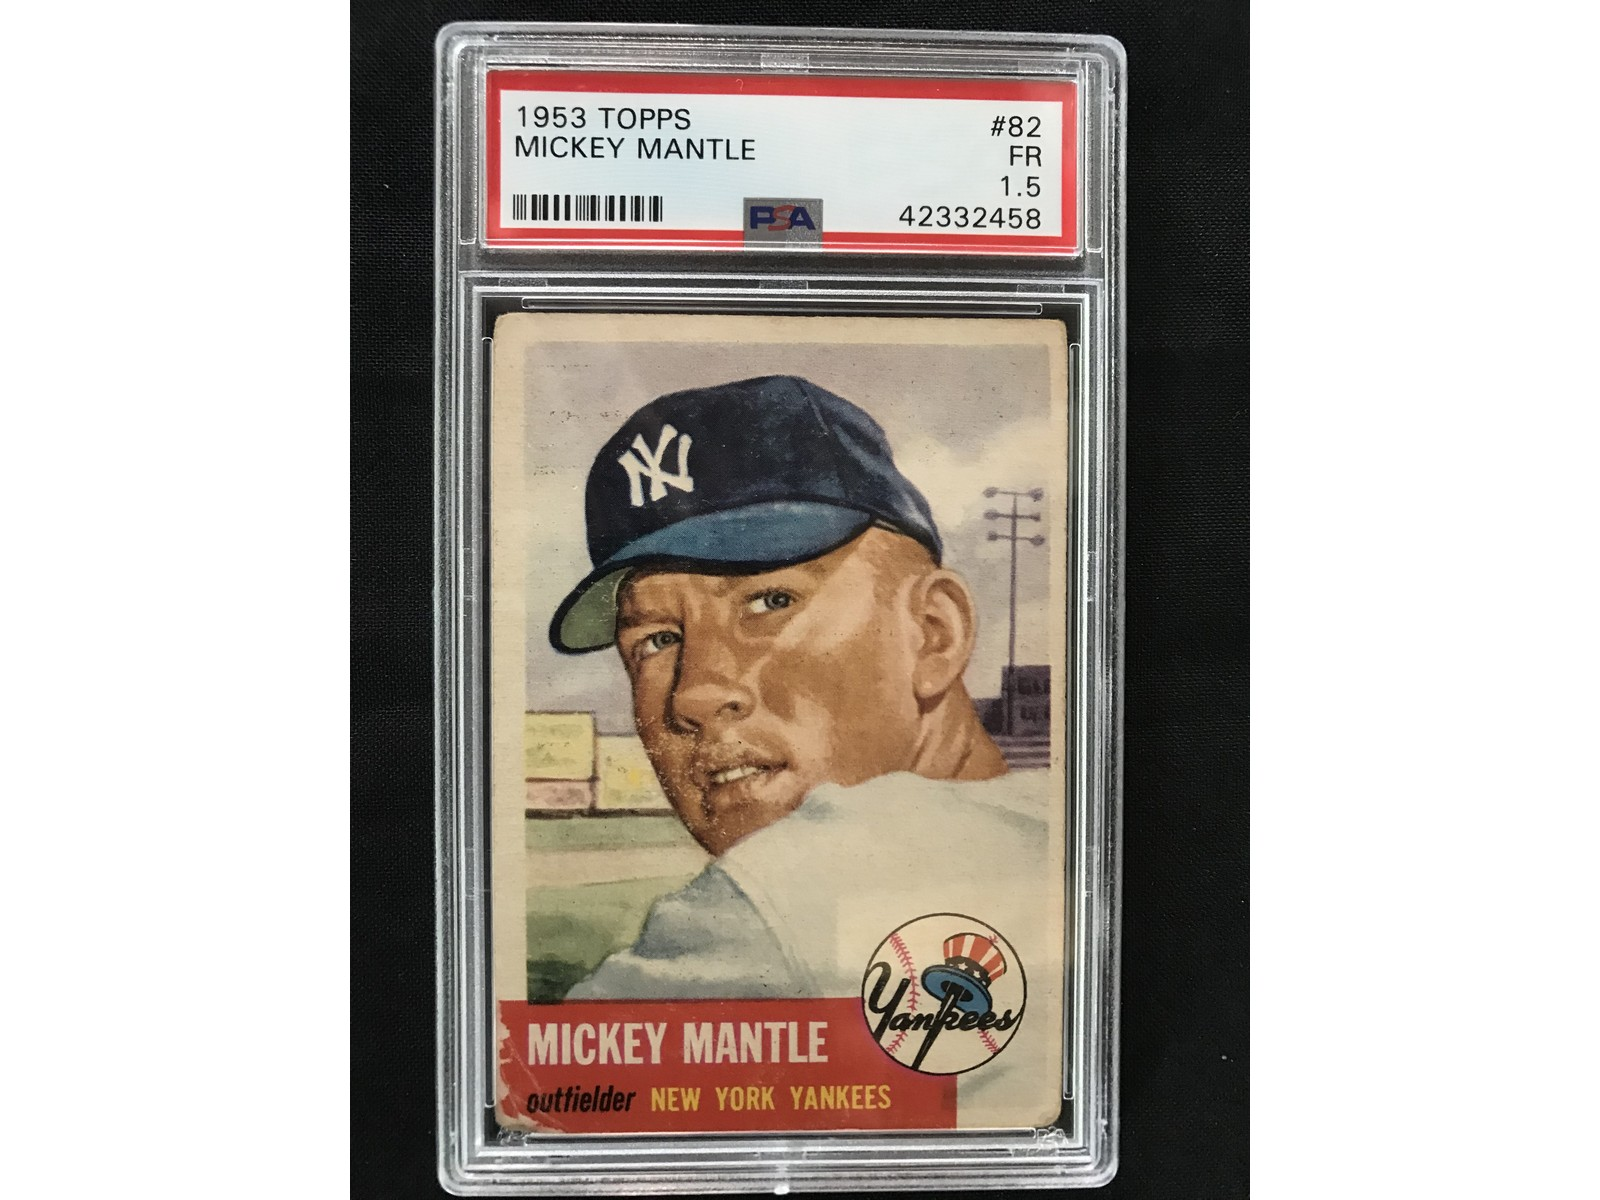 July 13 2020 Sports Cards and Memorabilia